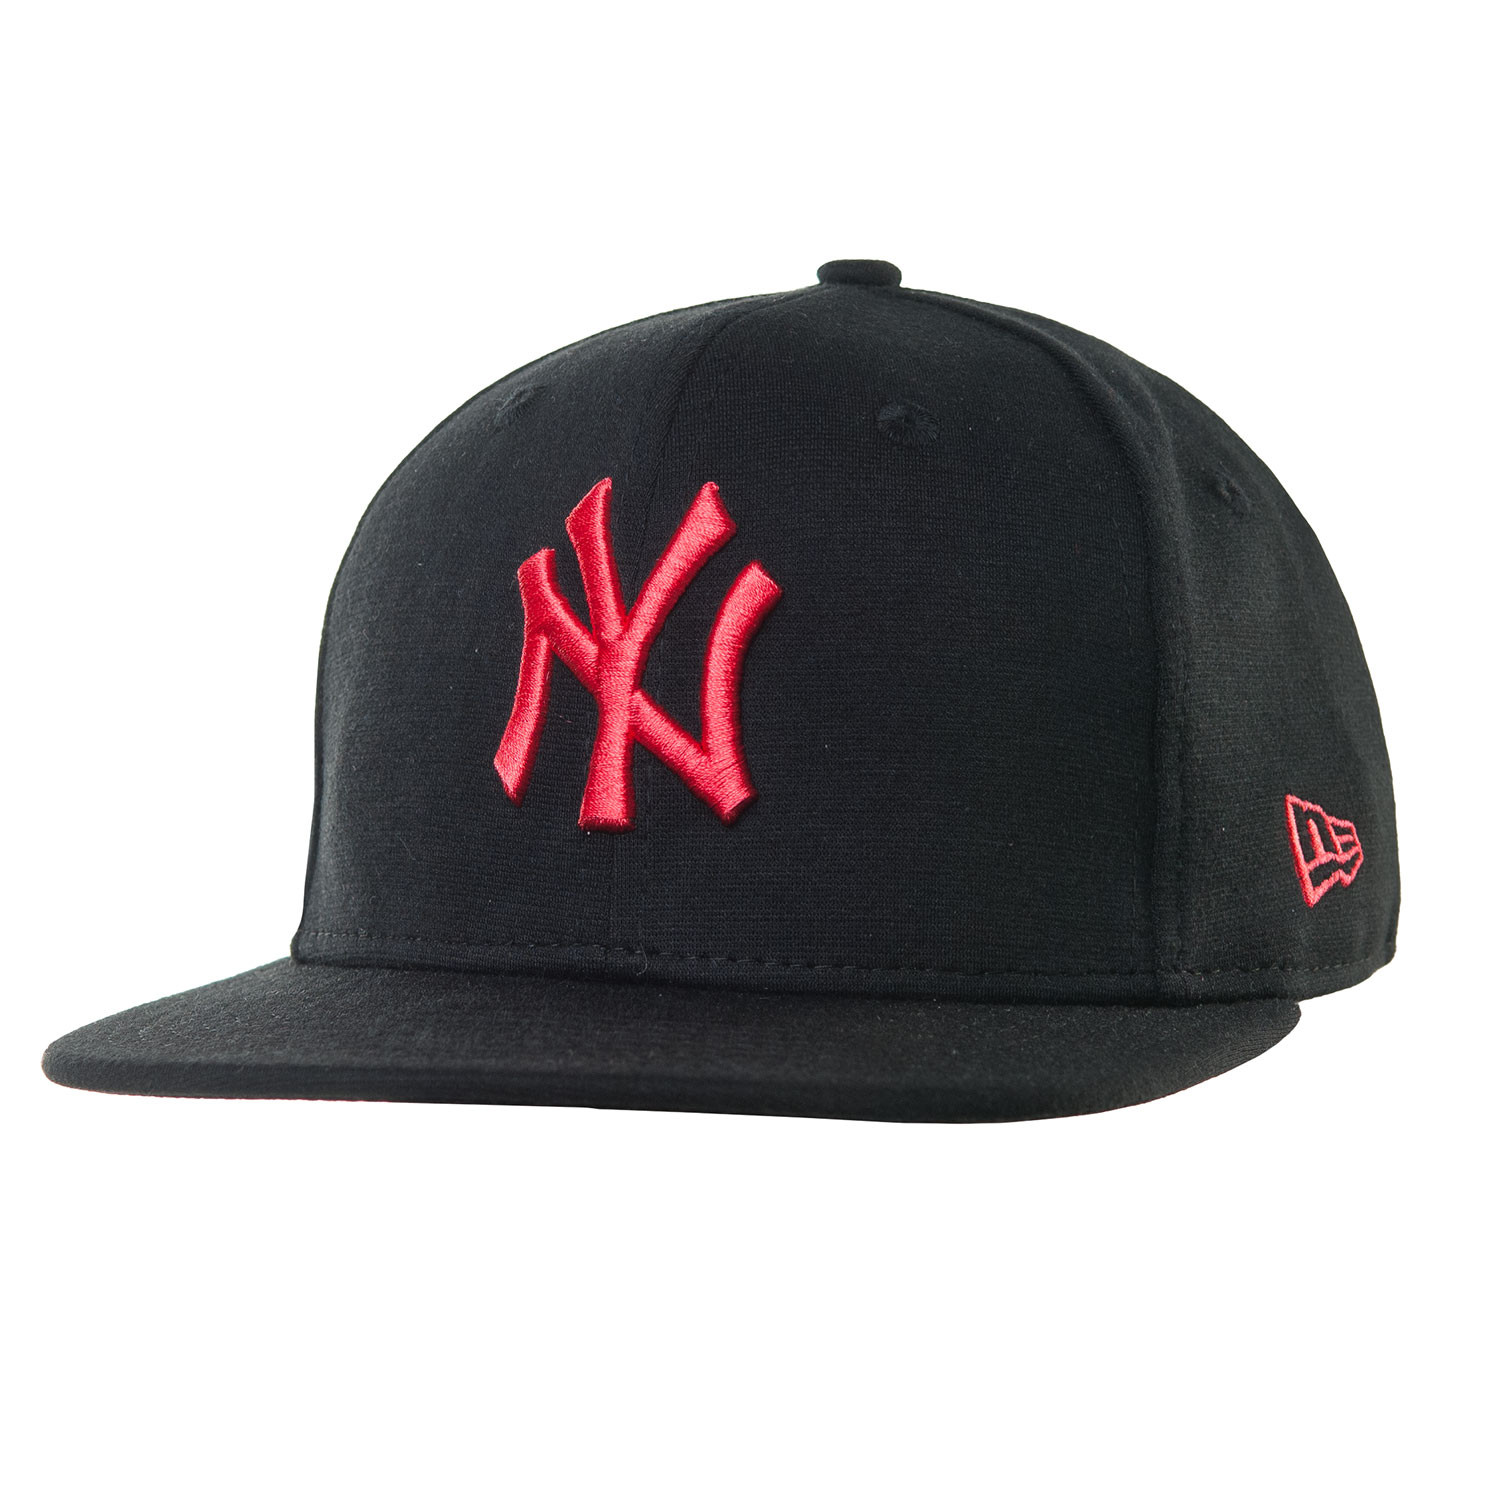 Kšiltovka New Era New York Yankees 9Fifty Jersey black/lavender